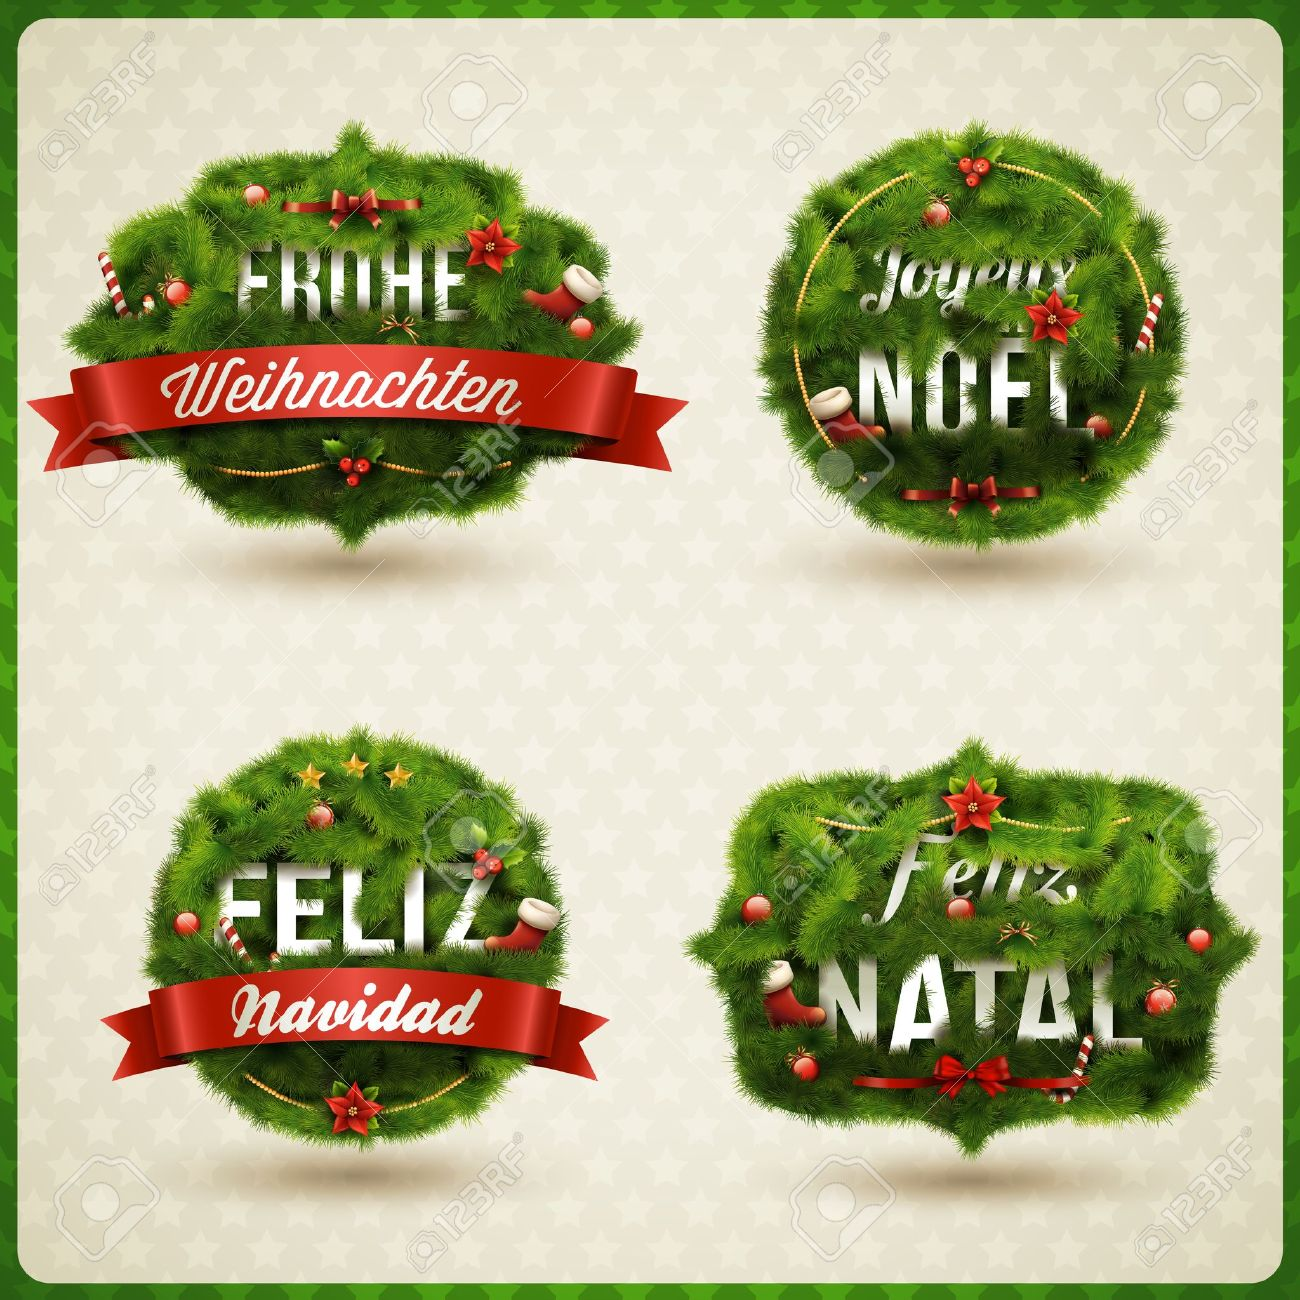 Merry Christmas  in different languages  German, Spanish, French, Portuguese   Creative Christmas label Stock Vector - 16530360